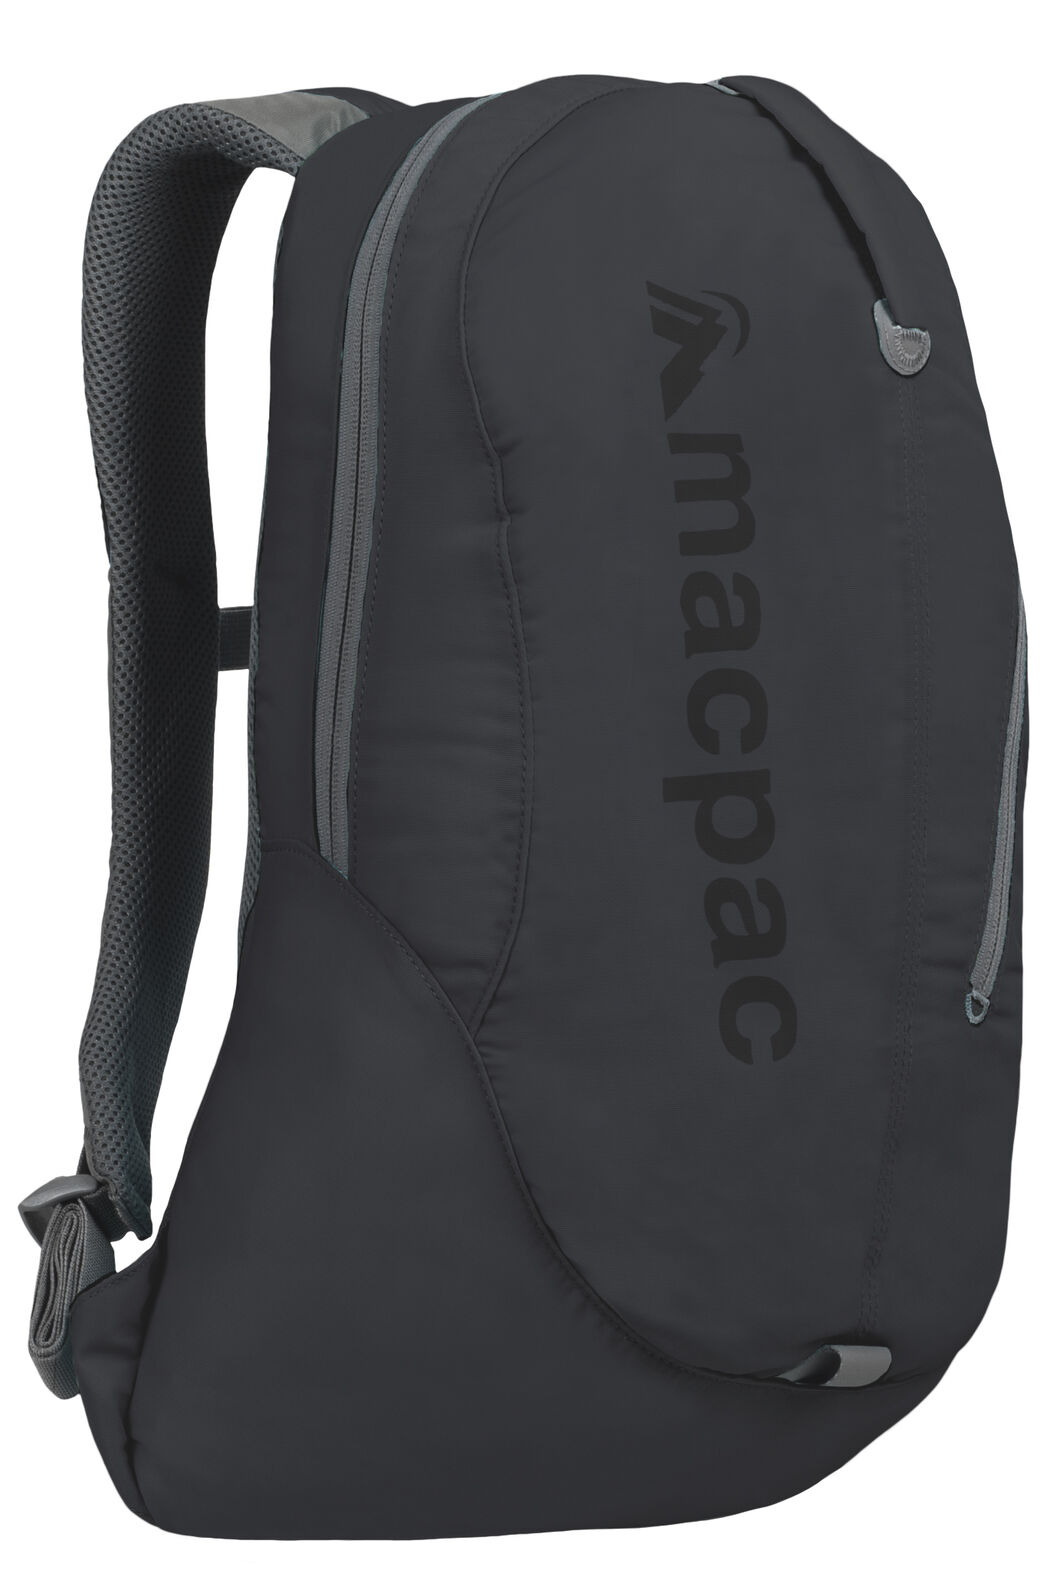 Macpac Kahuna 18L Backpack, Forged Iron/Black, hi-res